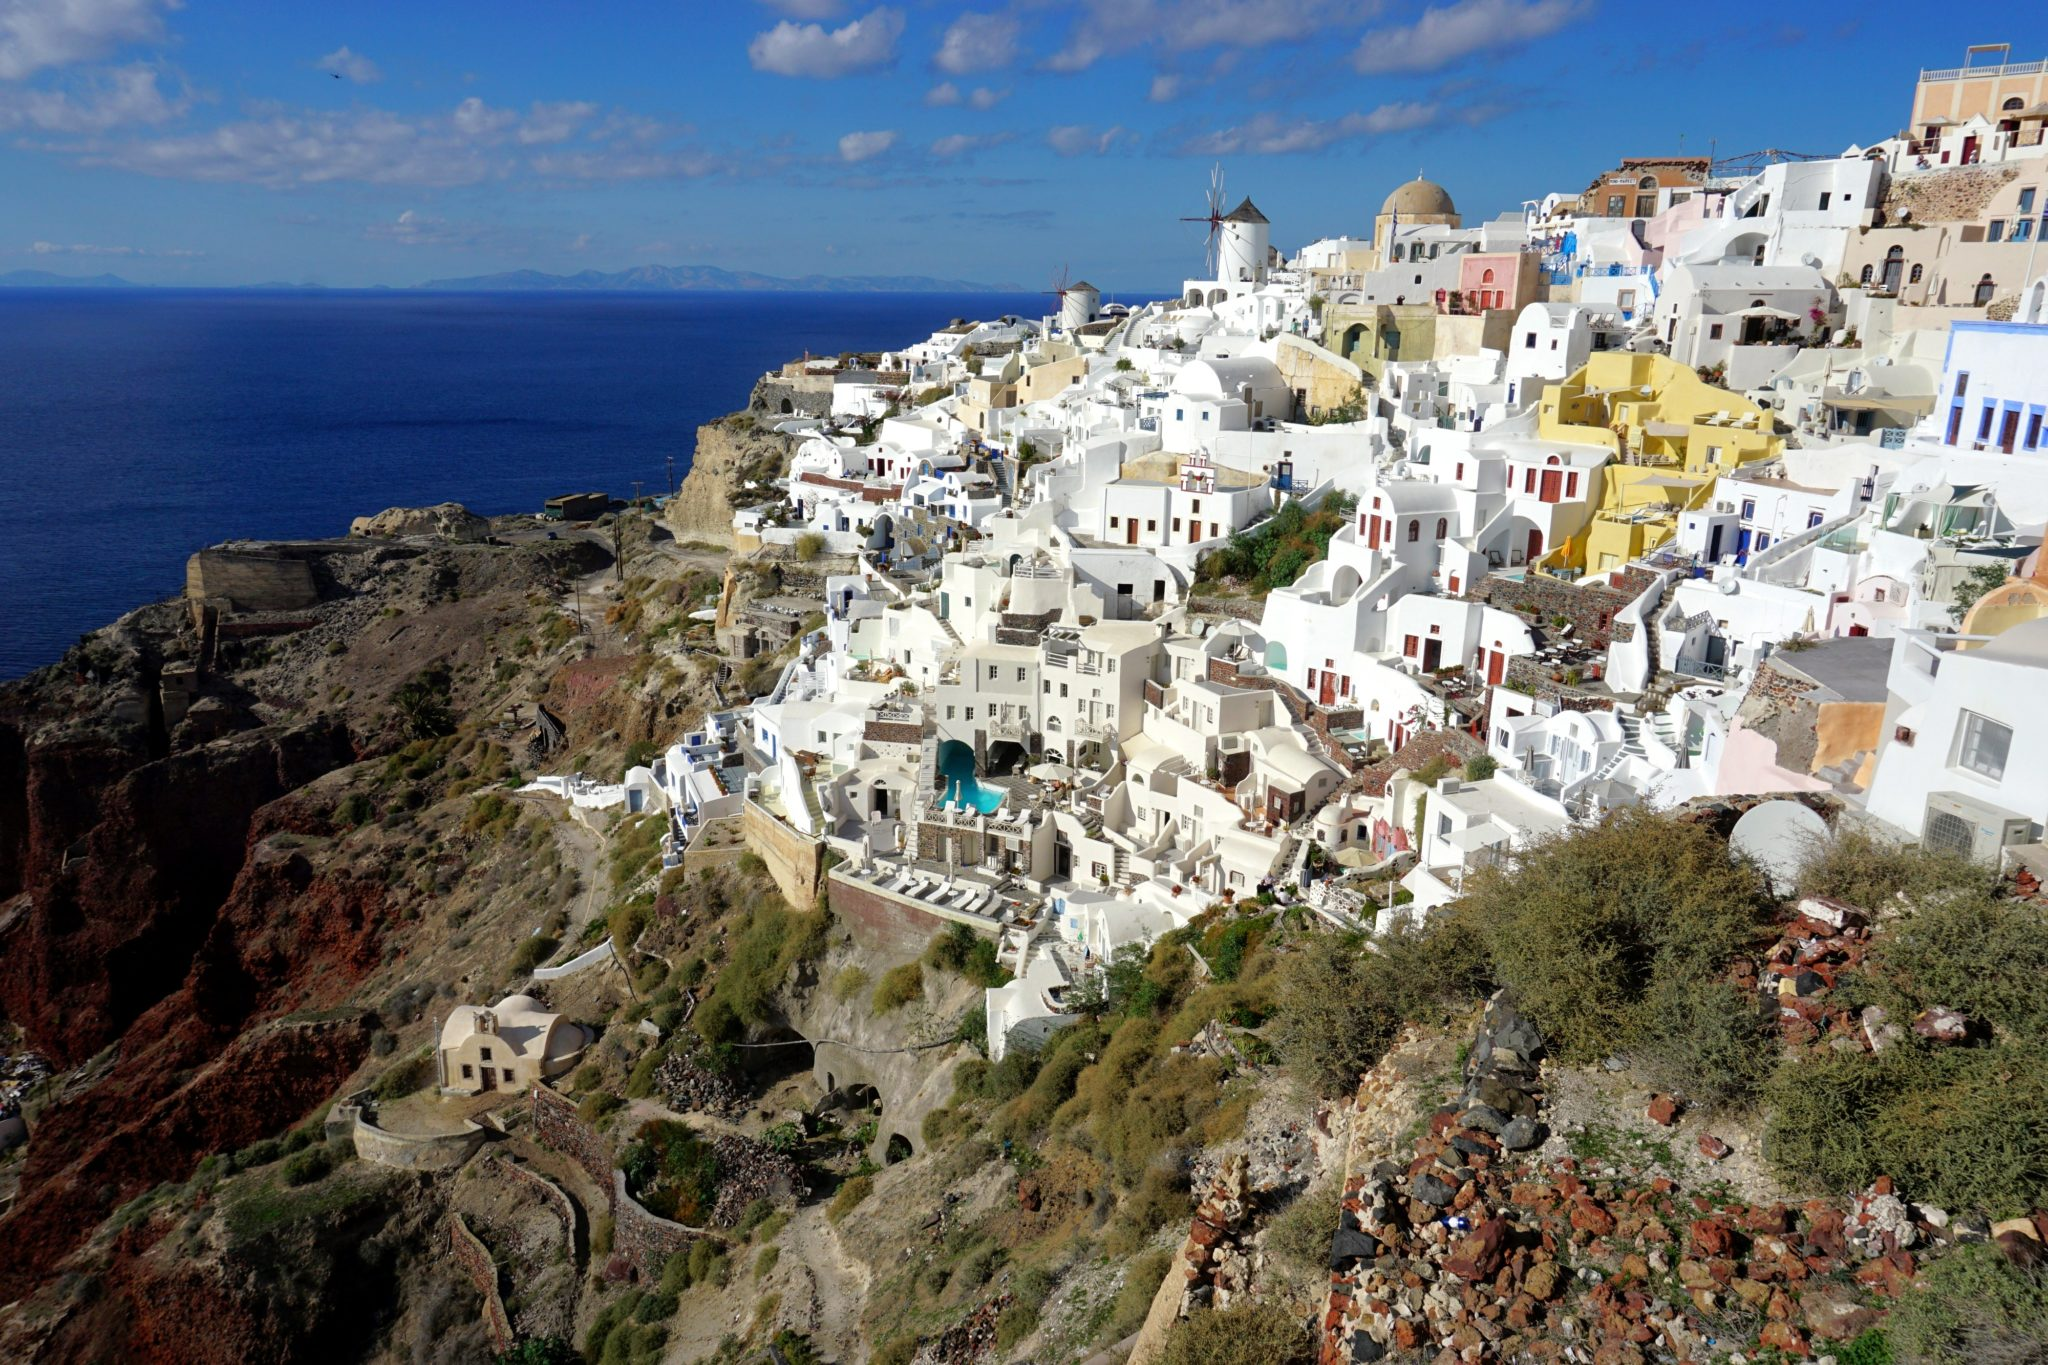 View of Oia from the Byzantine Castle Ruins. This view is a great 'reward' for completing the Fira to Oia hike.